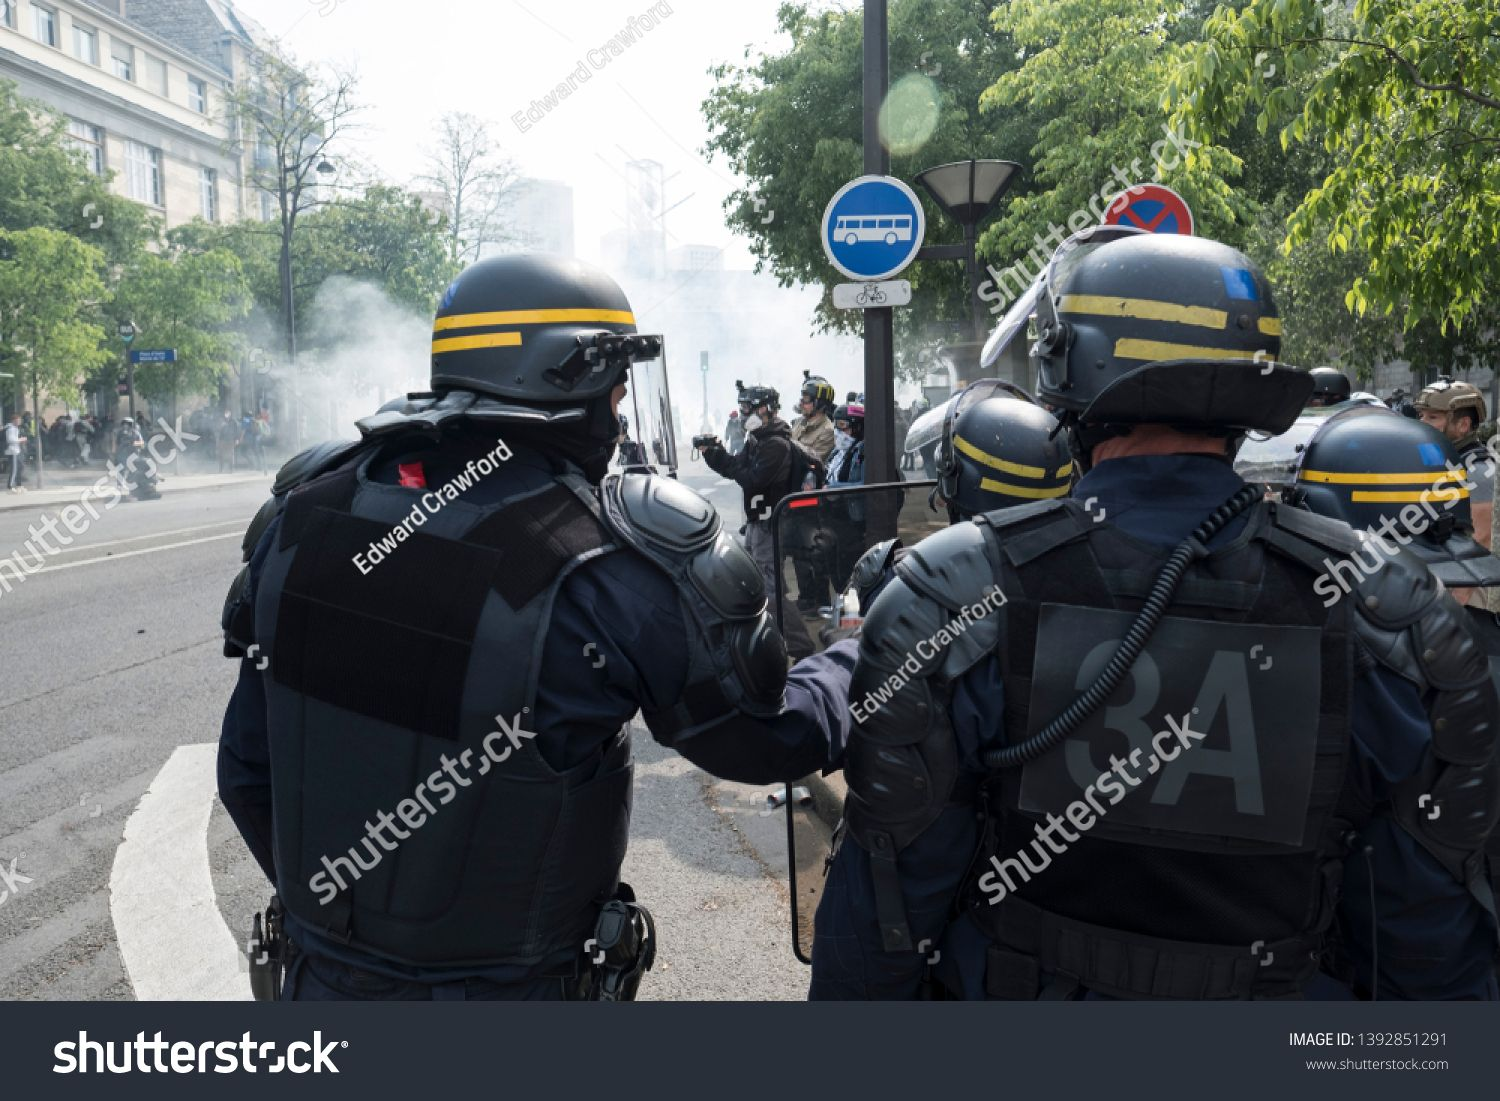 French Police Officers Stand Guard During The May Day Protest In Paris France 01 U002f05 U002f19 R Ad Affiliate Sta Police Officer Police Photo Editing